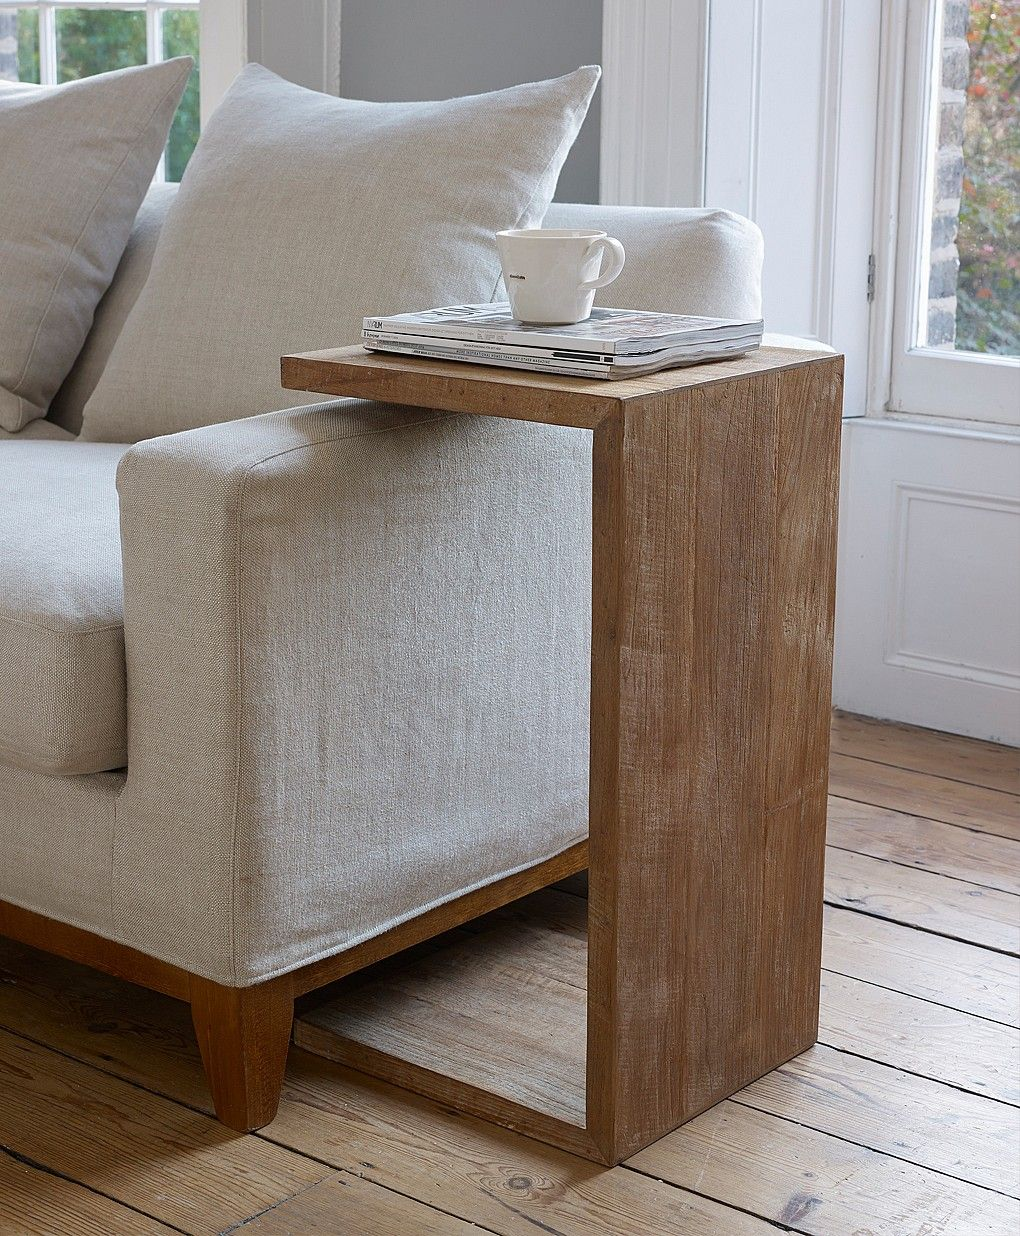 Fantastic Sofa End Tables In 2020 Diy Sofa Table Living Room